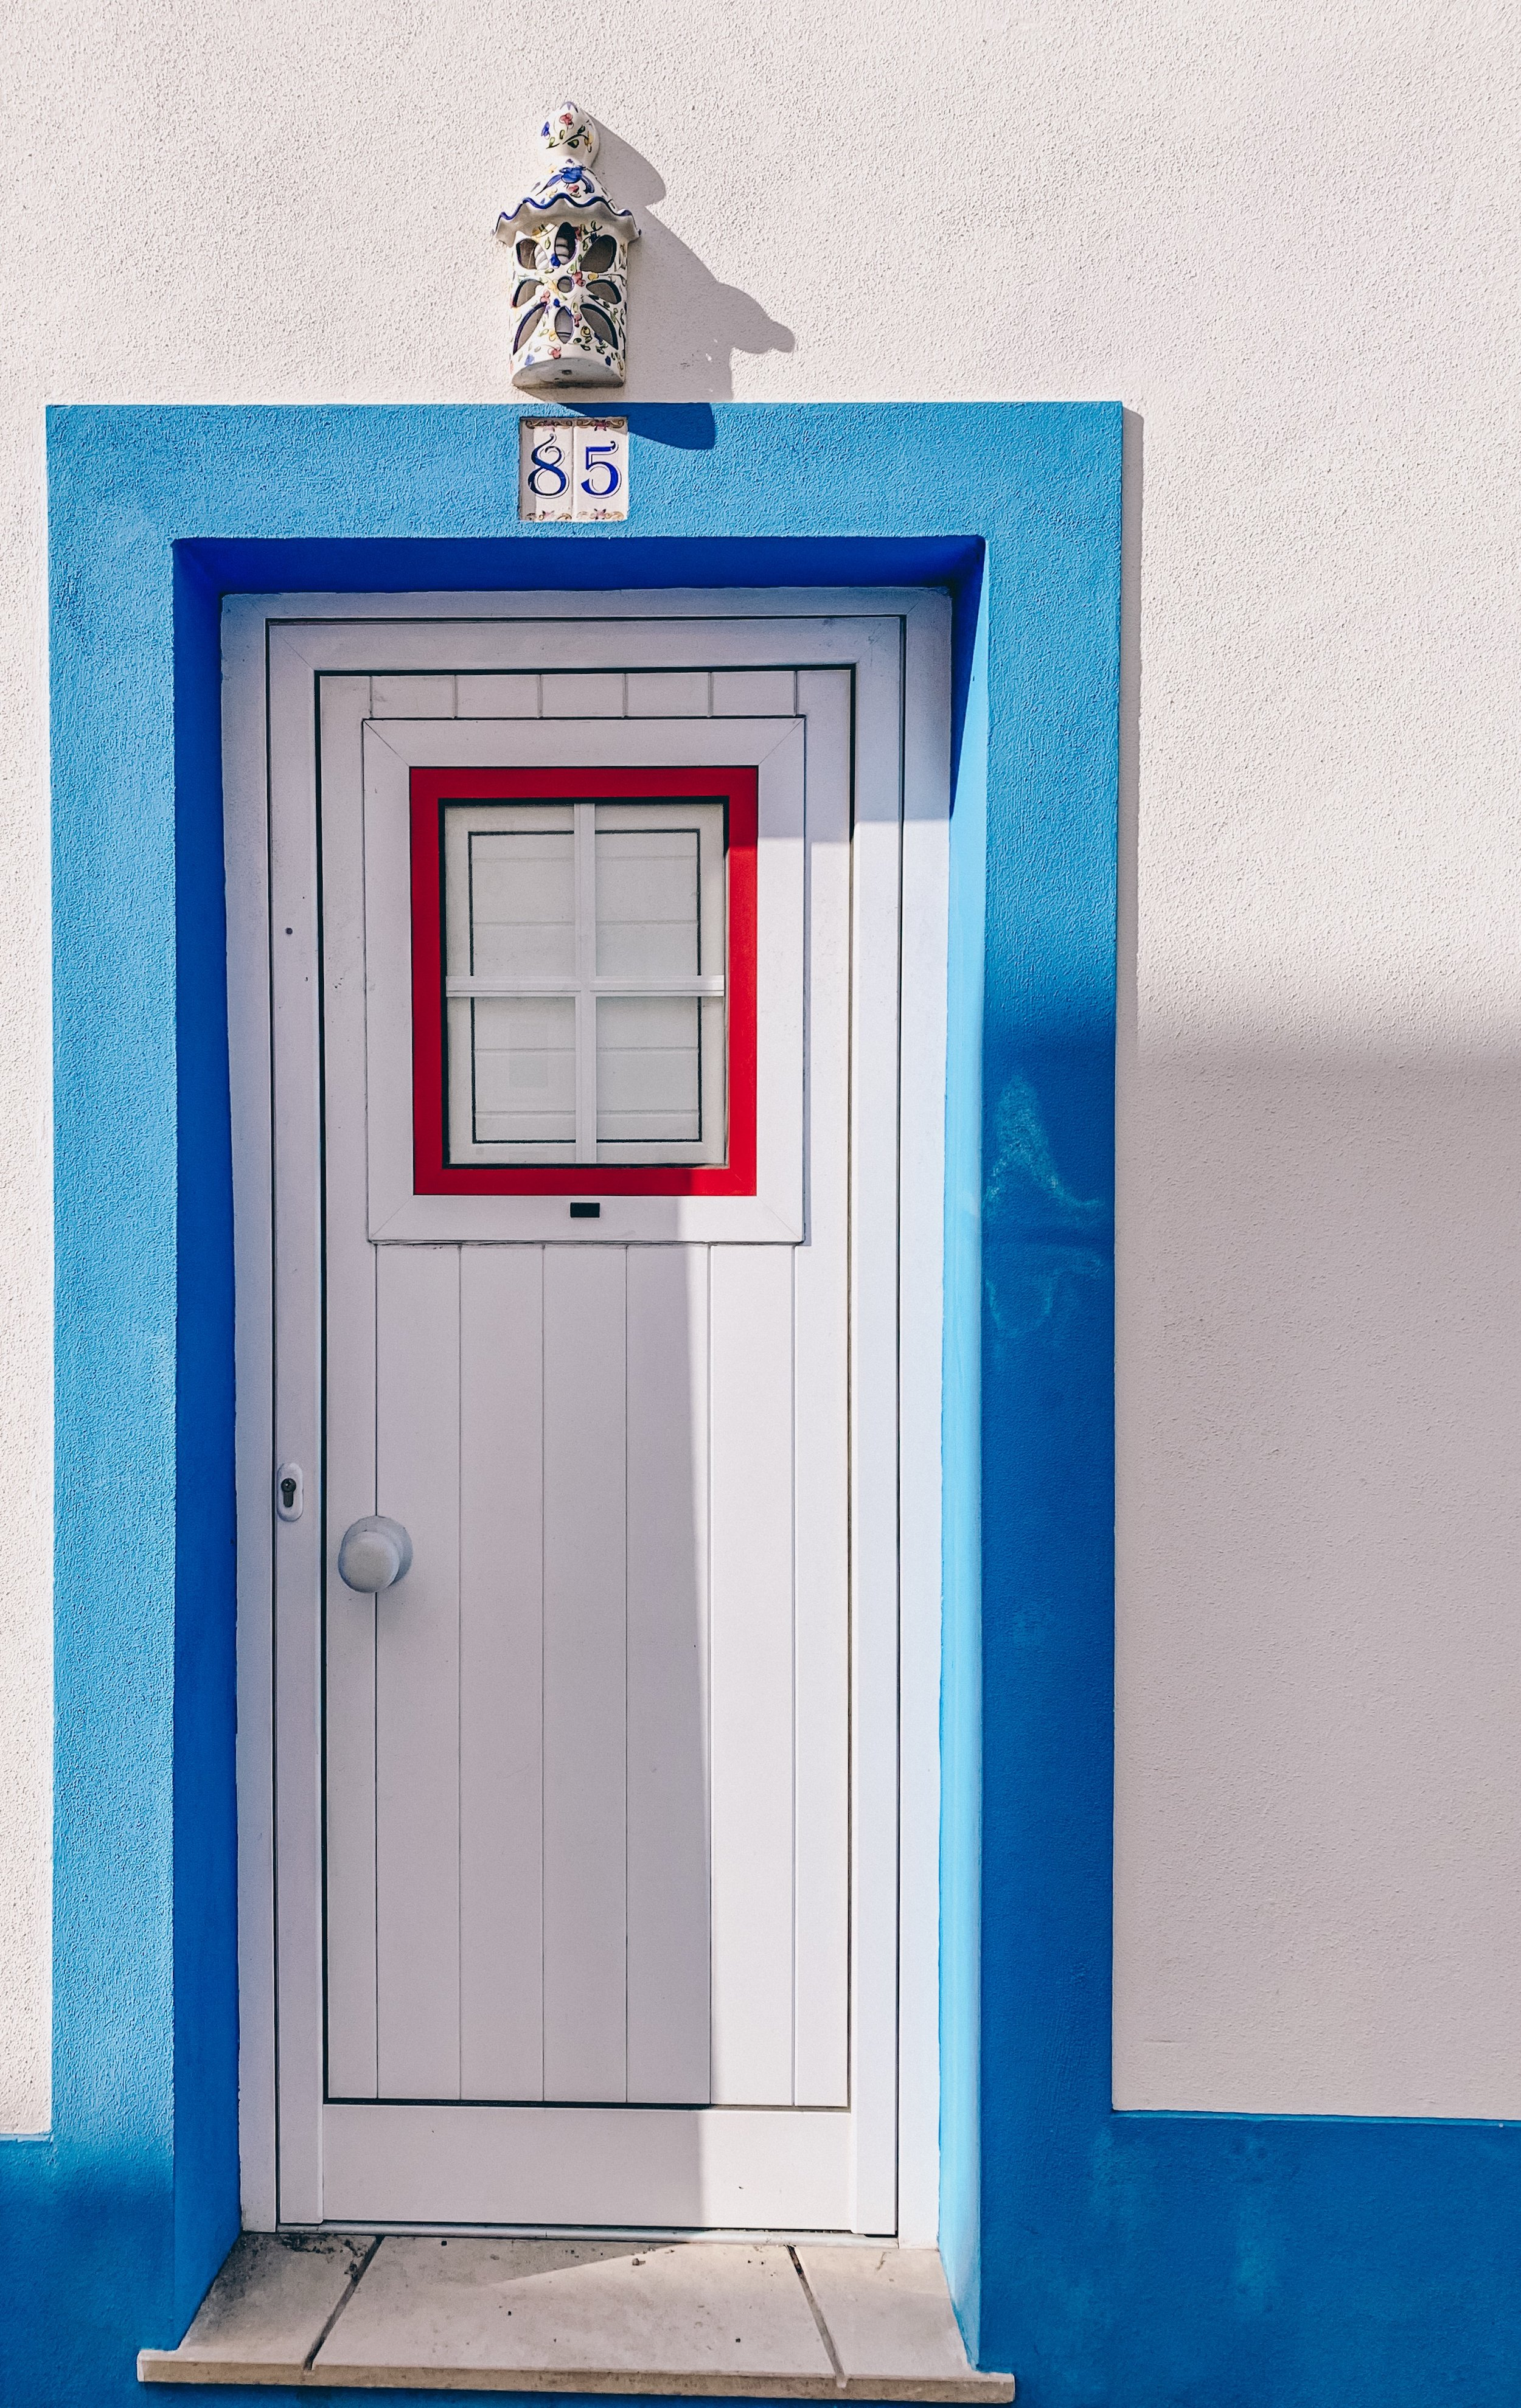 The colorful streets of Albufeira